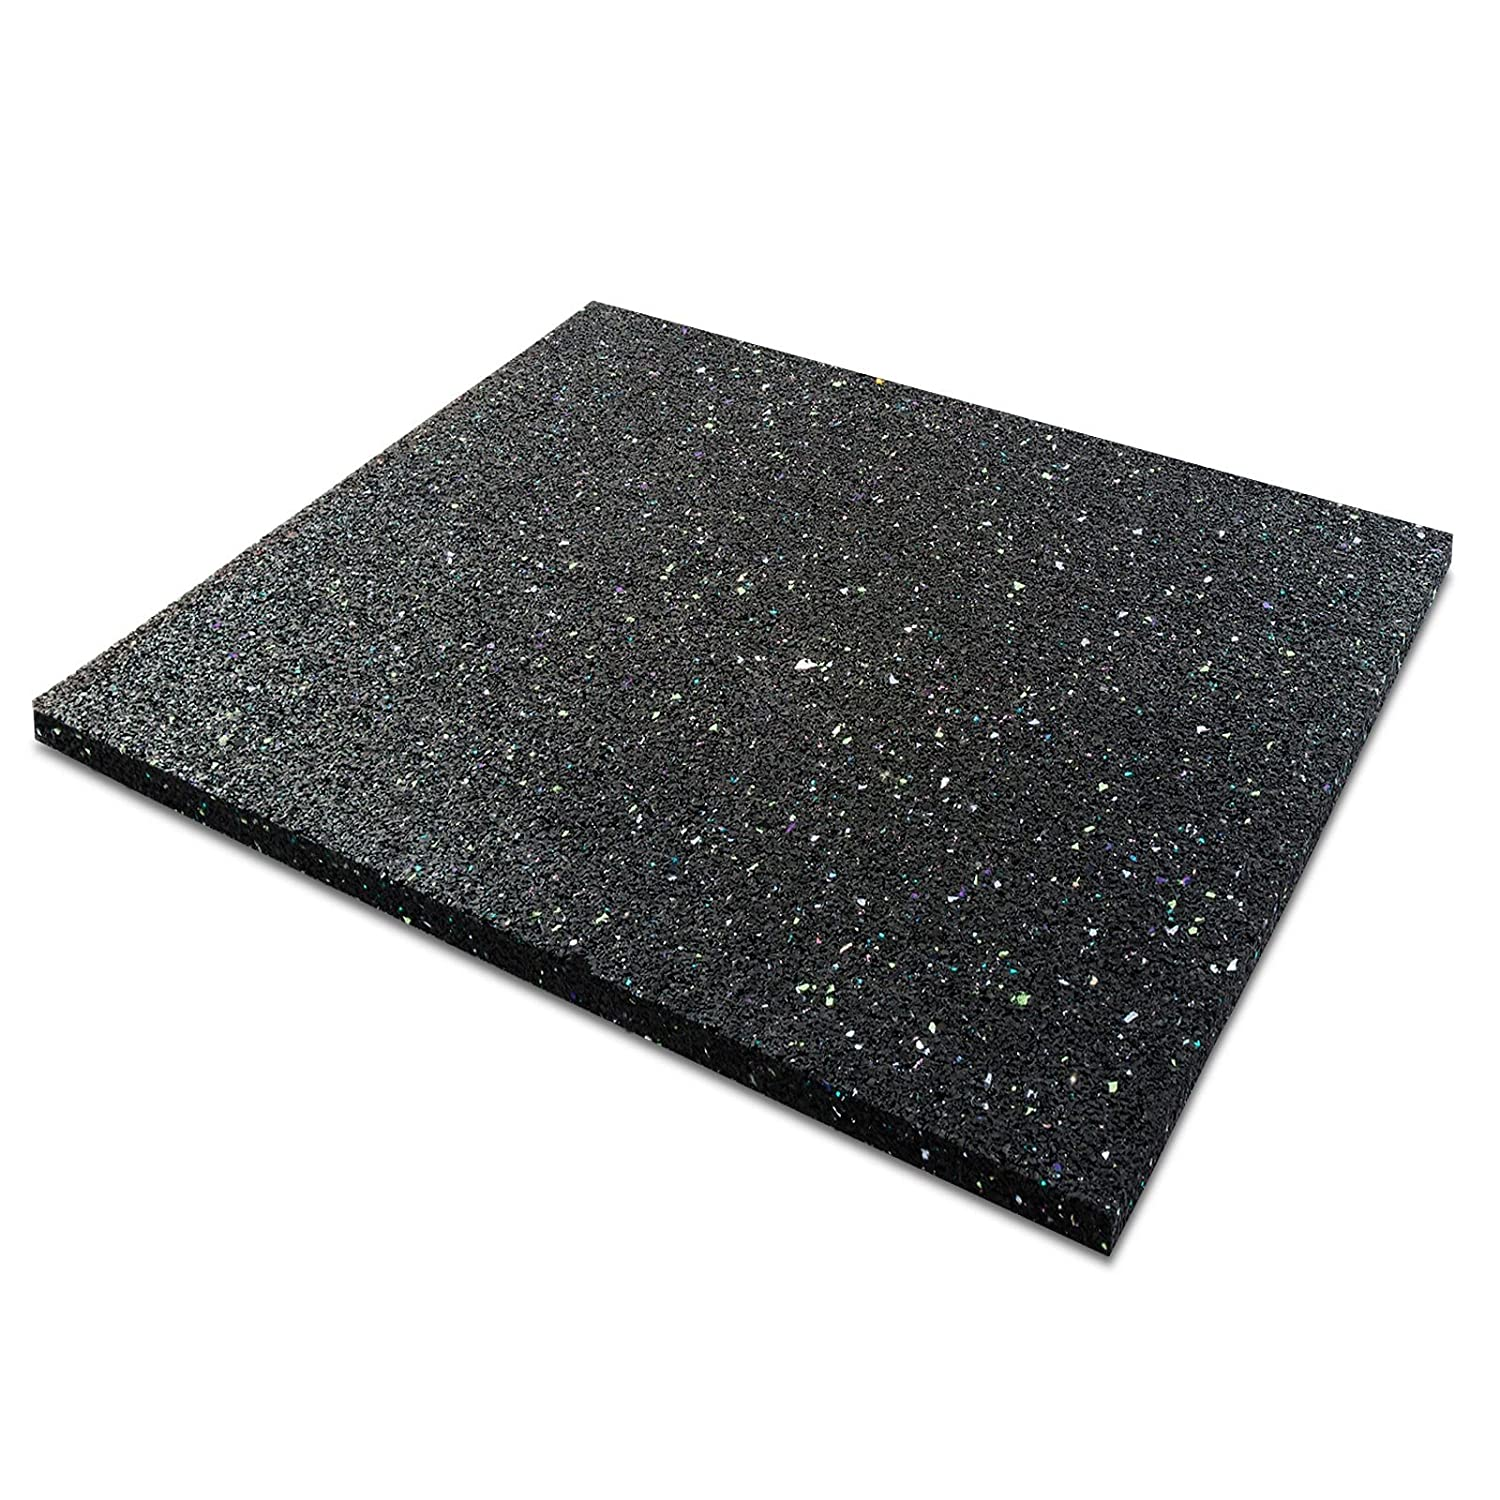 "casa pura Anti-Vibration Pad - Rubber Vibration Isolator Mat | Matting for Washing Machines, Washers, Dryers and Appliances | Multiple Thicknesses & Sizes | 3/8"" Thick - 24"" x 40"""